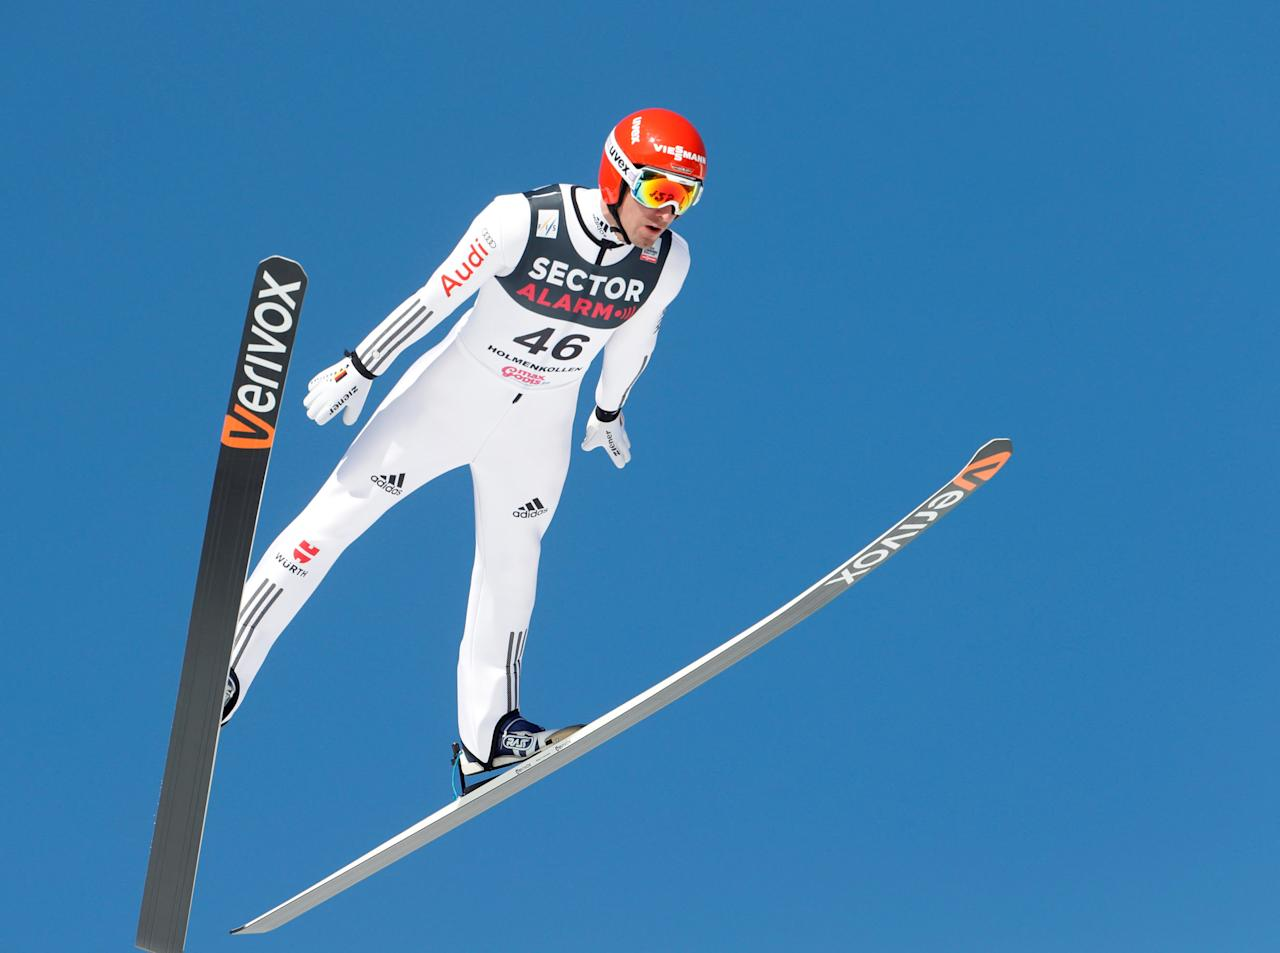 REFILE - ADDING RESTRICTIONS  Skiing -  Holmenkollen FIS World Cup Nordic - Nordic Combined ski jumping - Oslo, Norway - 11/03/2017.  Bjoern Kircheisen of Germany competes.  NTB Scanpix/Terje Bendiksby/via REUTERS   ATTENTION EDITORS - THIS IMAGE WAS PROVIDED BY A THIRD PARTY. FOR EDITORIAL USE ONLY. NORWAY OUT. NO COMMERCIAL SALES.